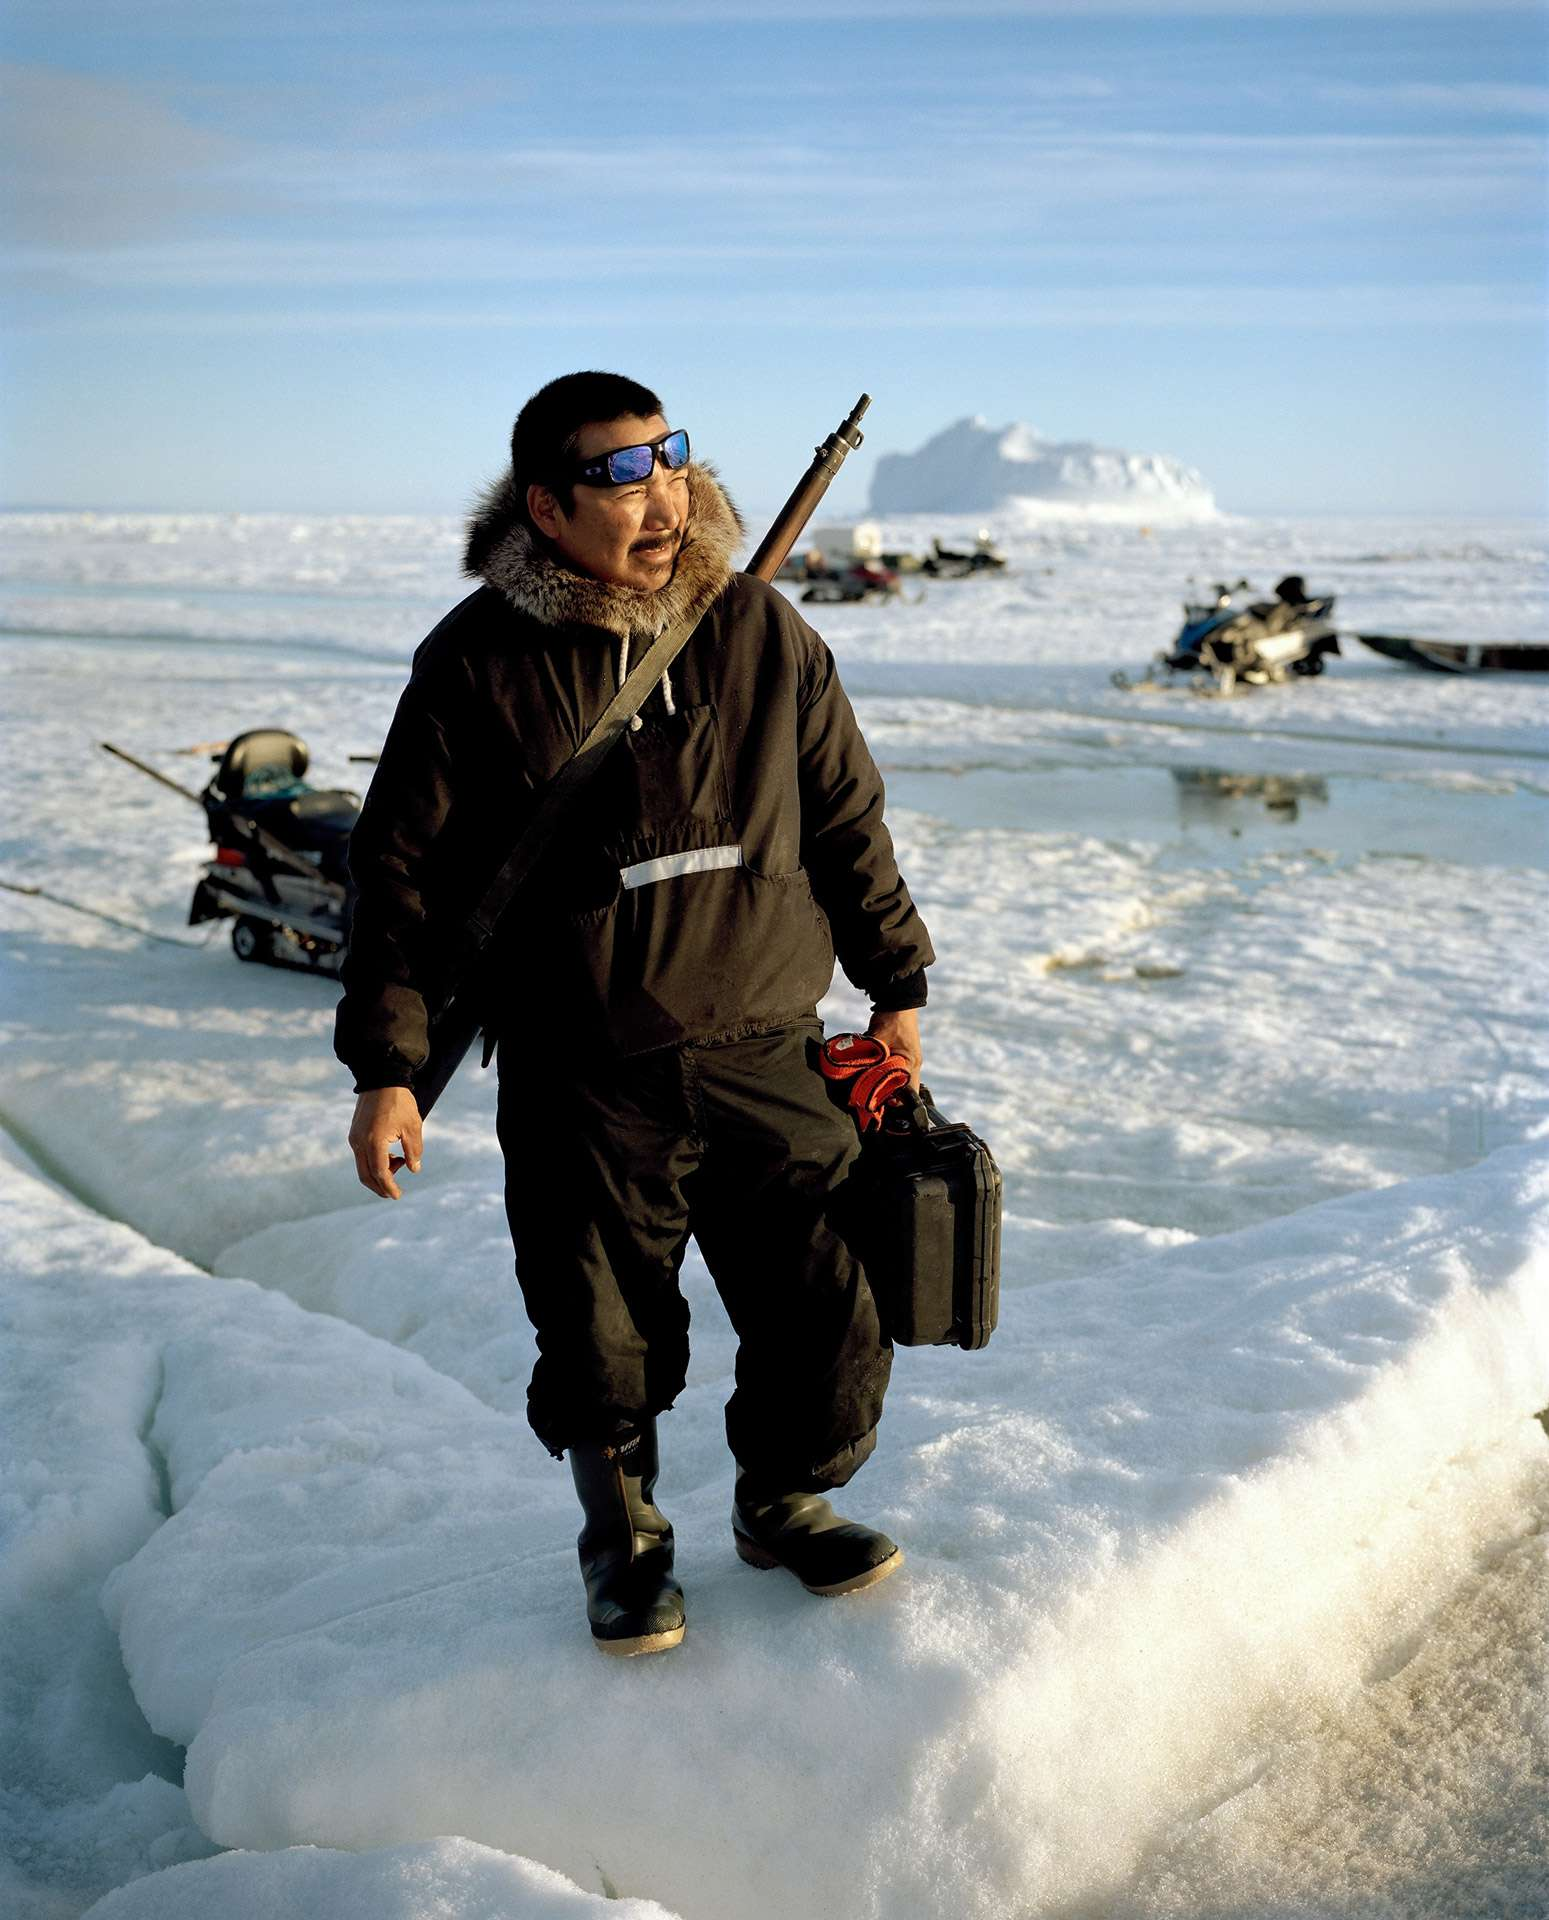 man on ice block wearing black winter coat and shotgun around his torso holding black case photographed by Guillaume Simoneau in Pond Inlet for Telegraph magazine